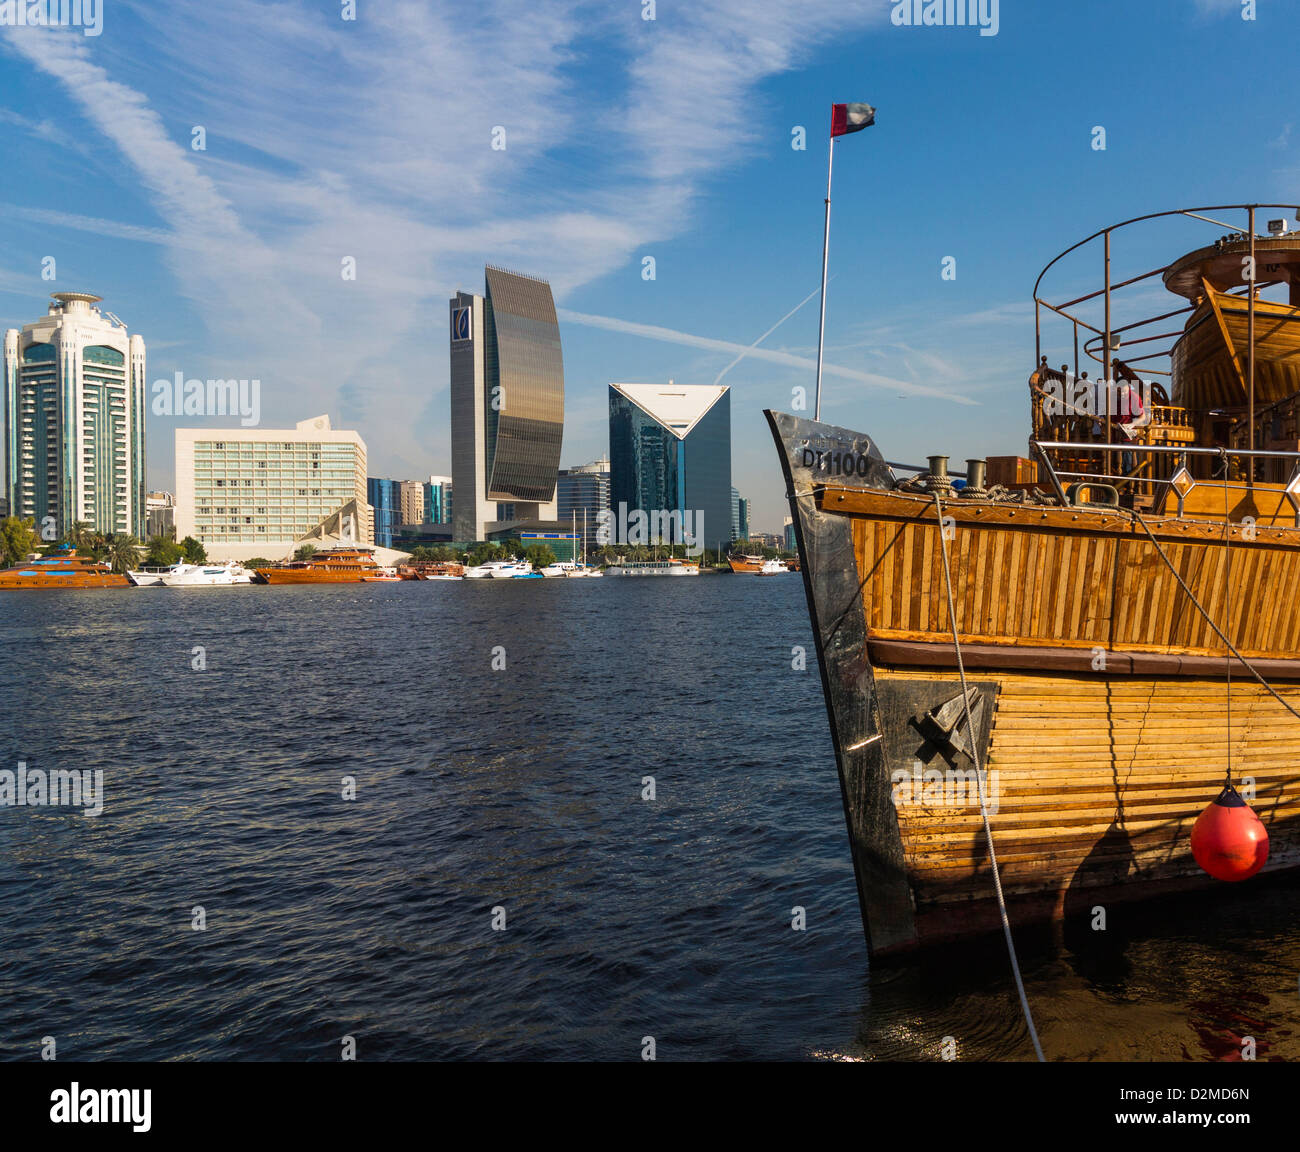 Dubai Creek with new buildings inc Bank of Dubai and Chamber of Commerce (on right) with a Dhow boat in foreground. - Stock Image